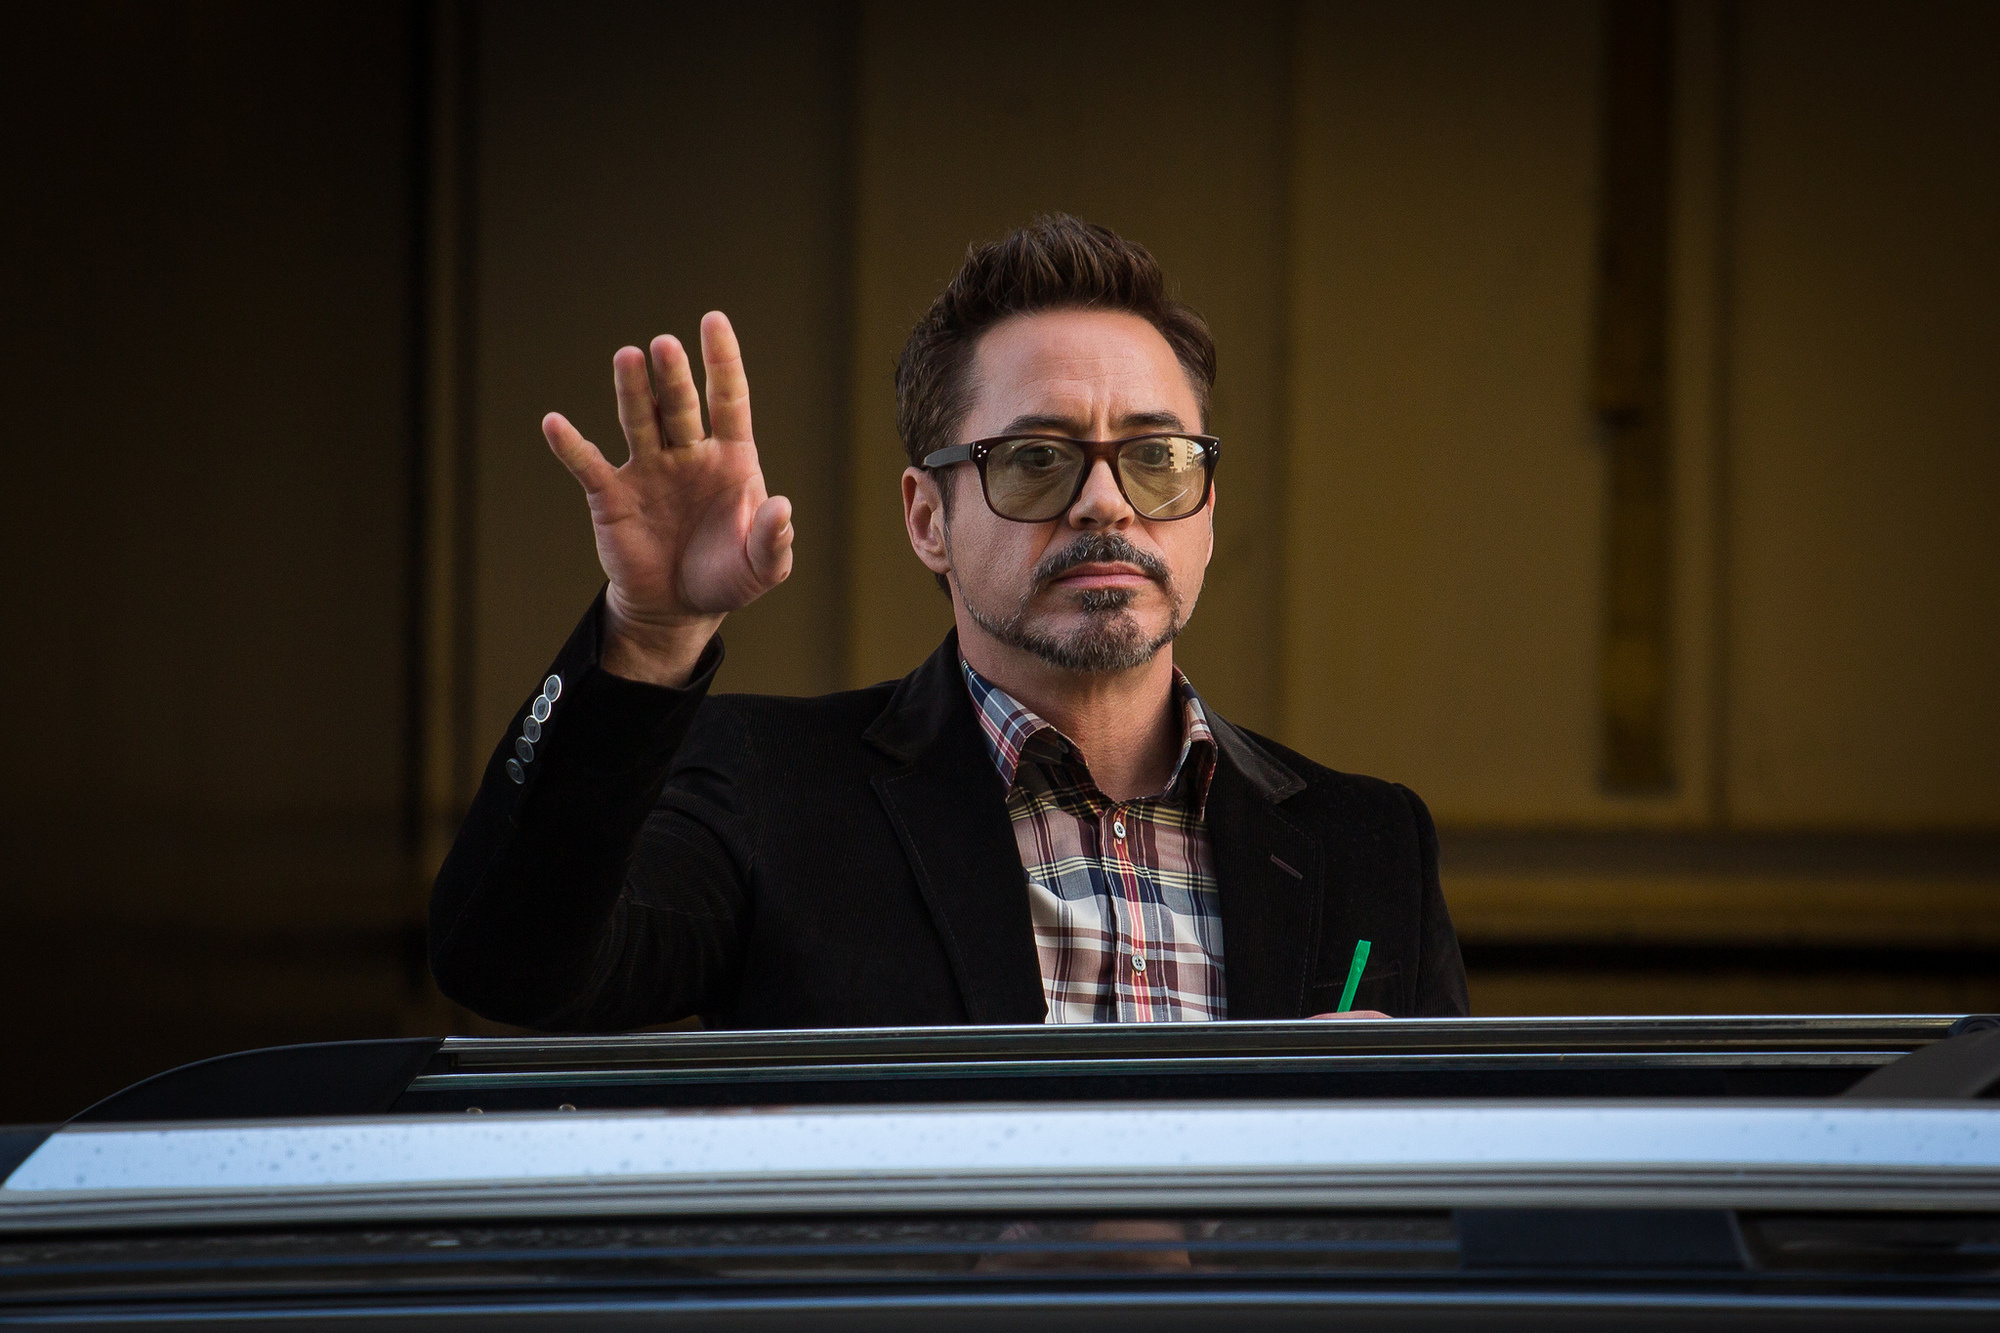 Robert Downey Jr. credits Burger King for getting him off drugs: Apparently, he ate a burger that was so nasty, it made him rethink his life choices and throw all of his drugs into the ocean.